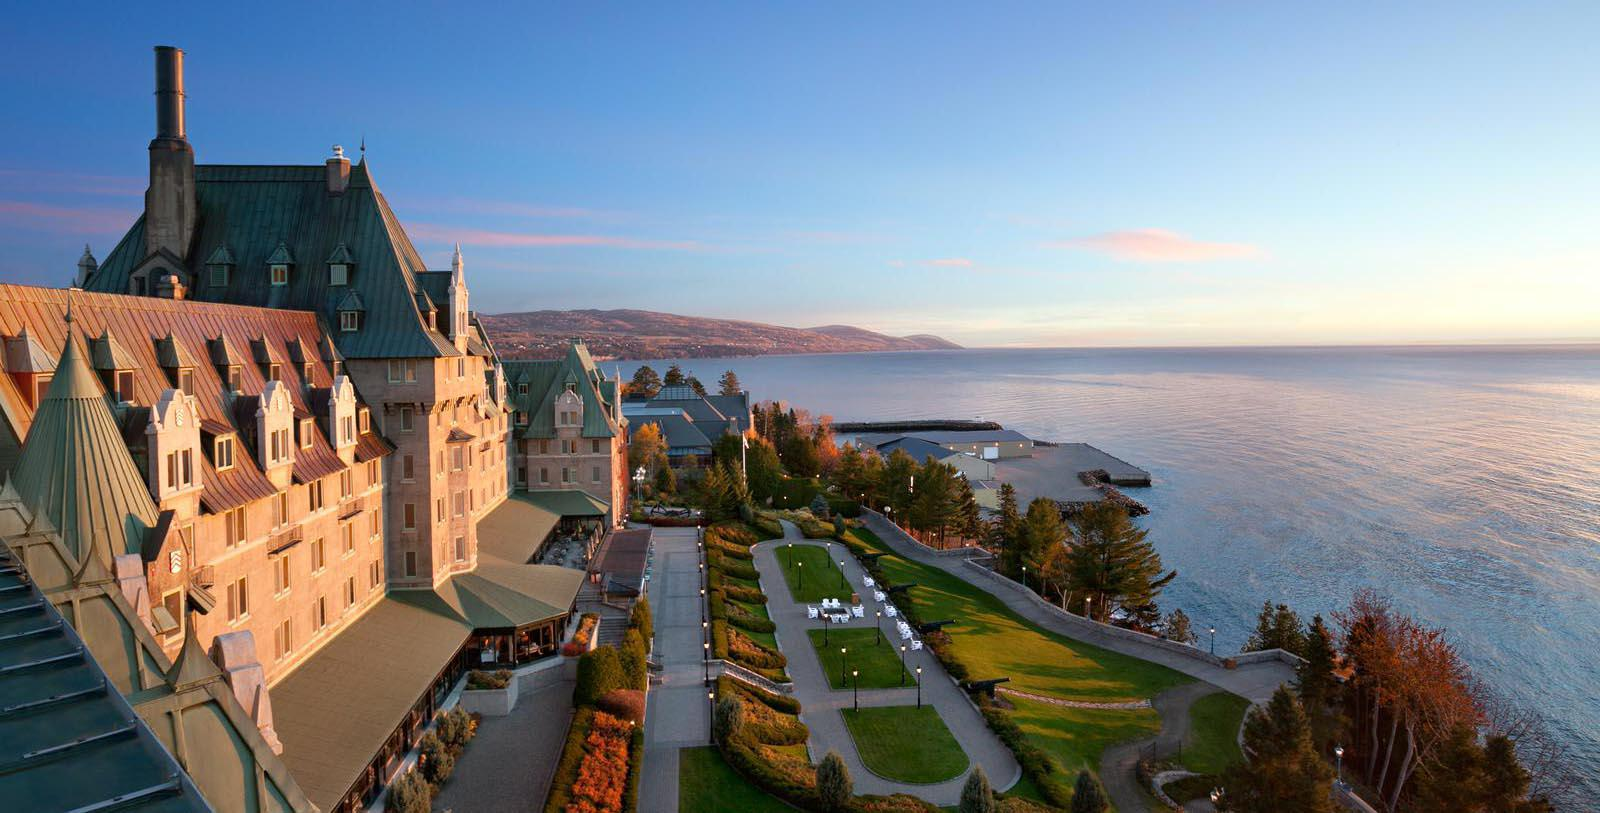 Sunset exterior of Fairmont Le Manior Richelieu in Quebec, Canada.